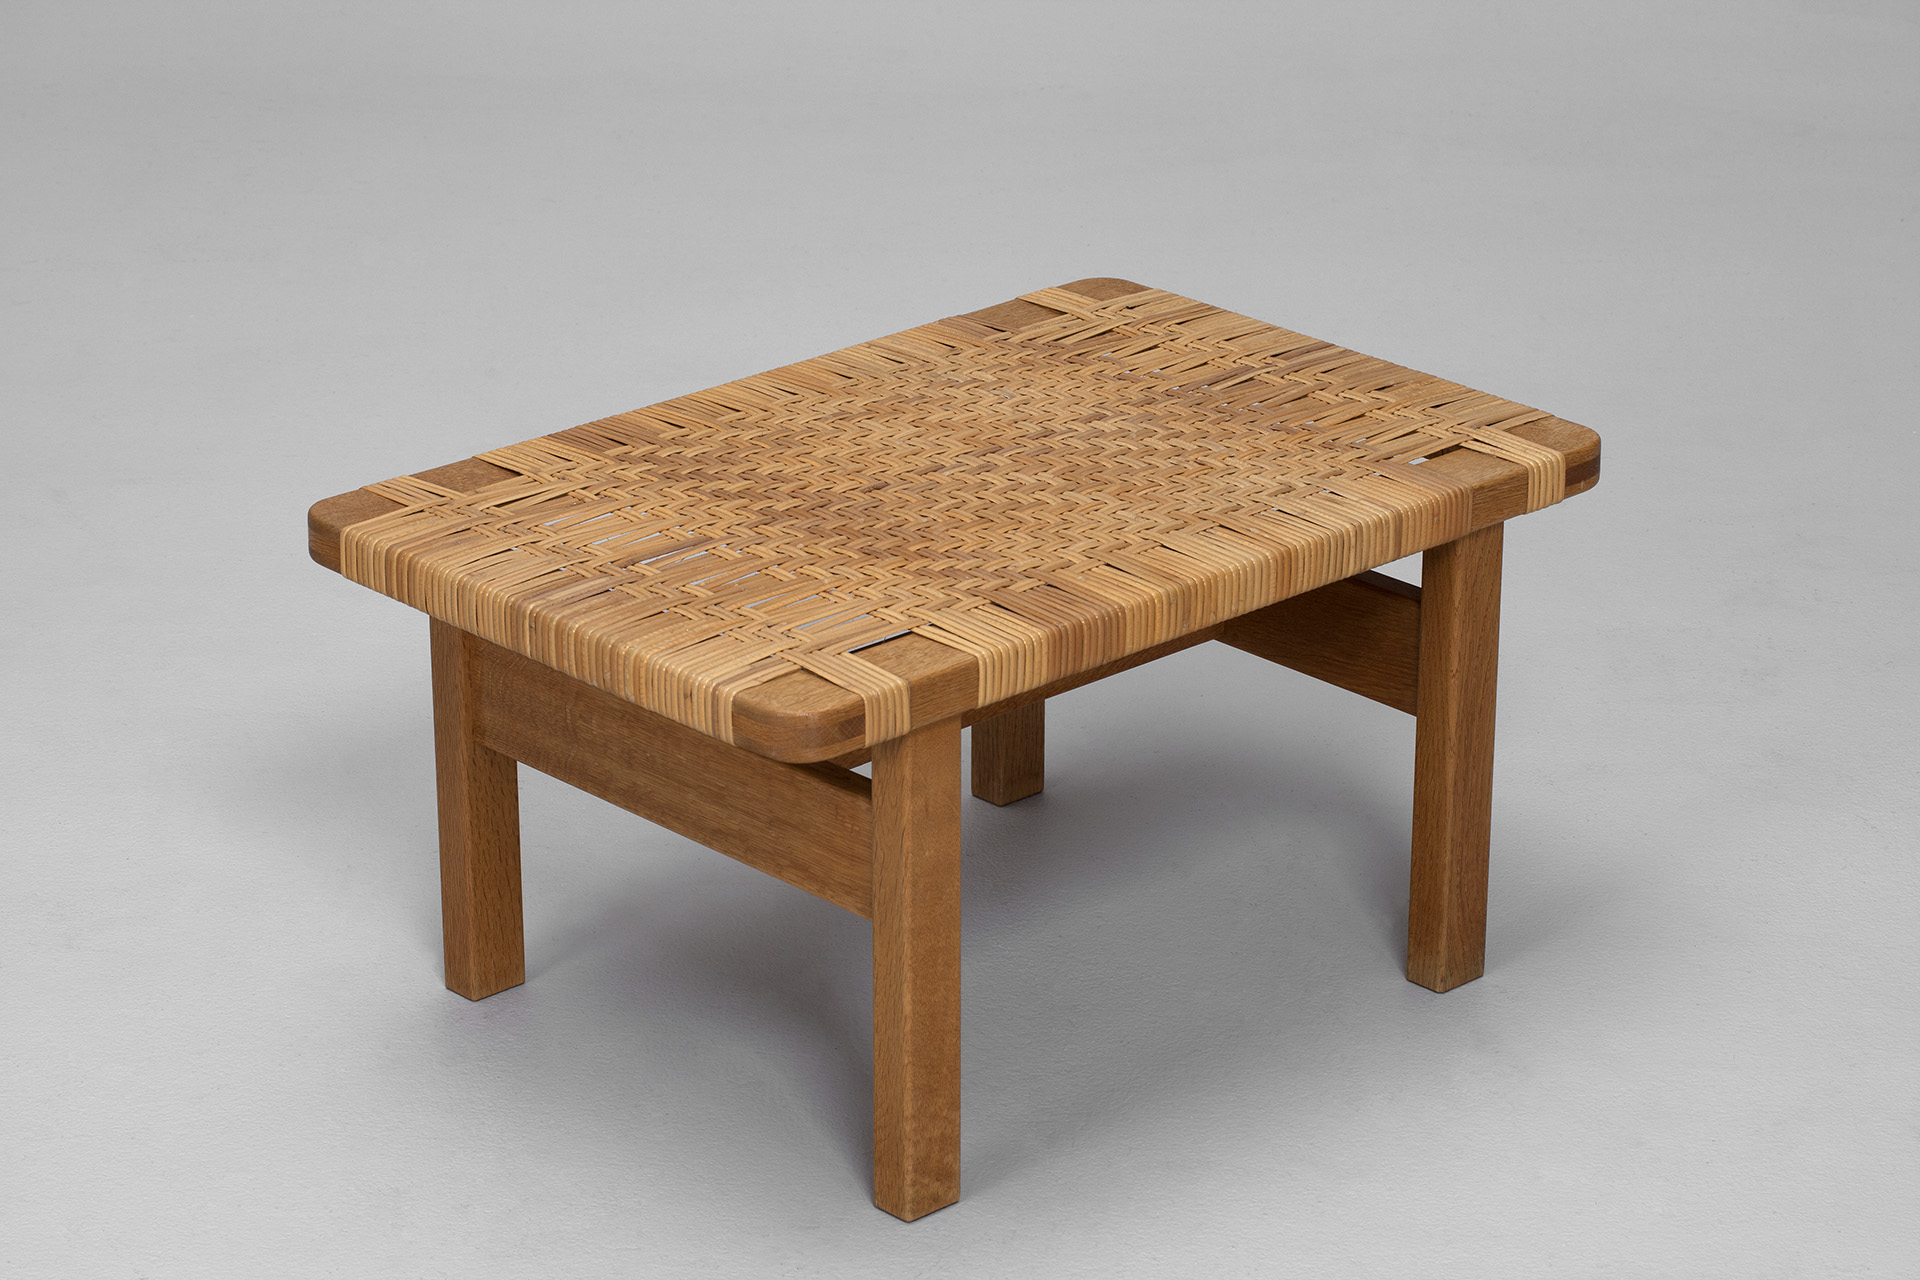 Bench / Table